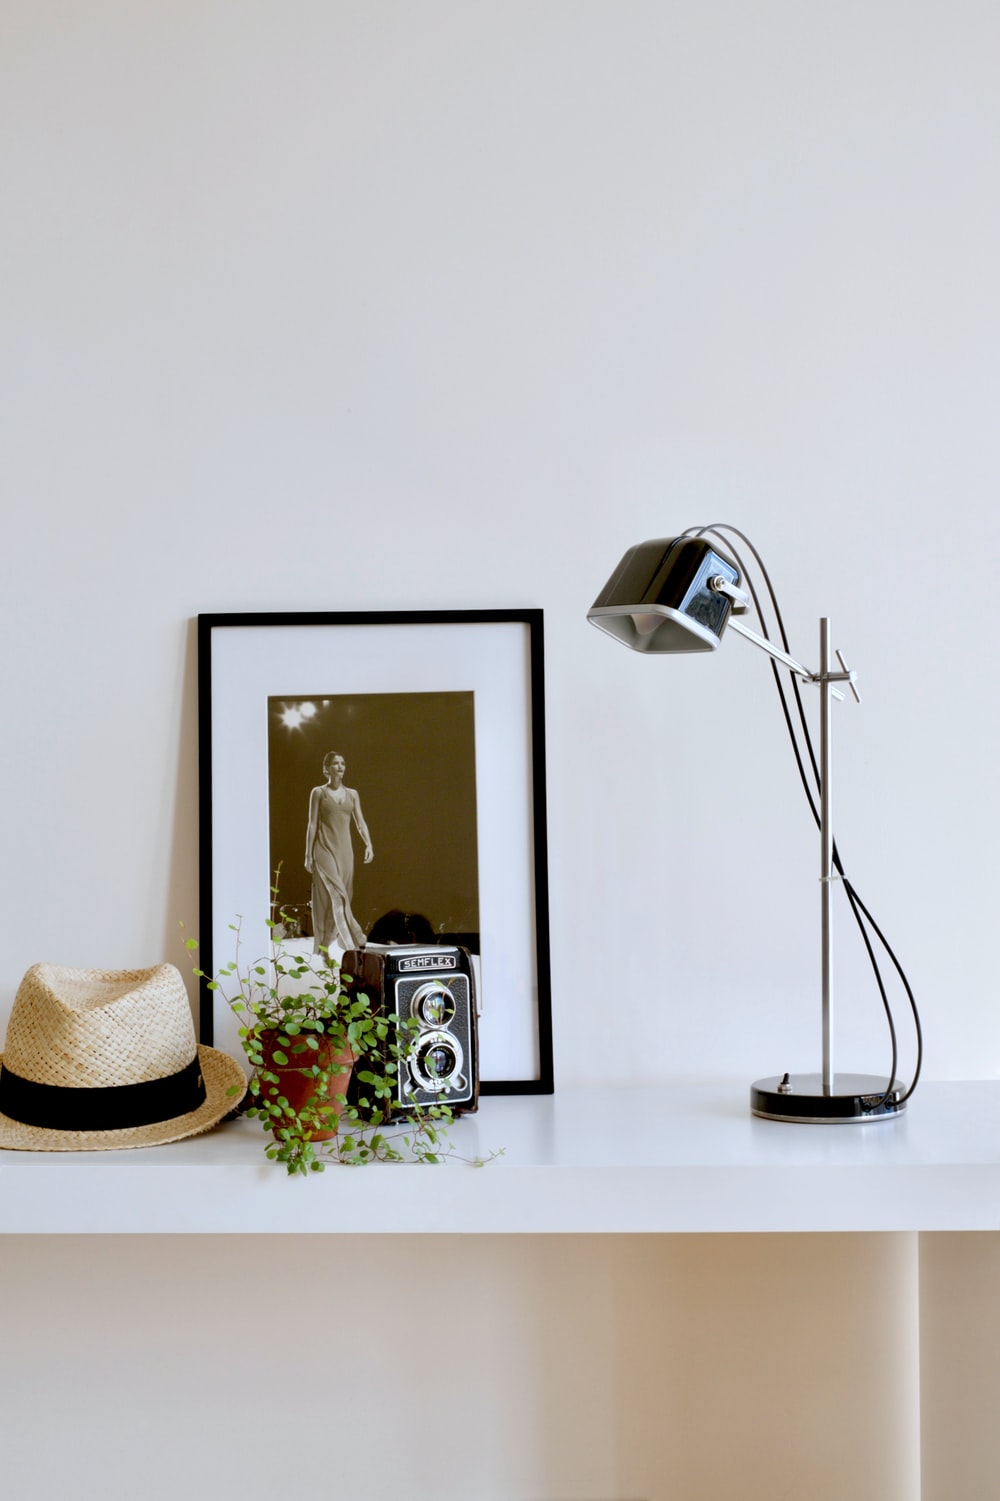 beige fedora hat, green vines and 8mm camera in front of photo on white desk